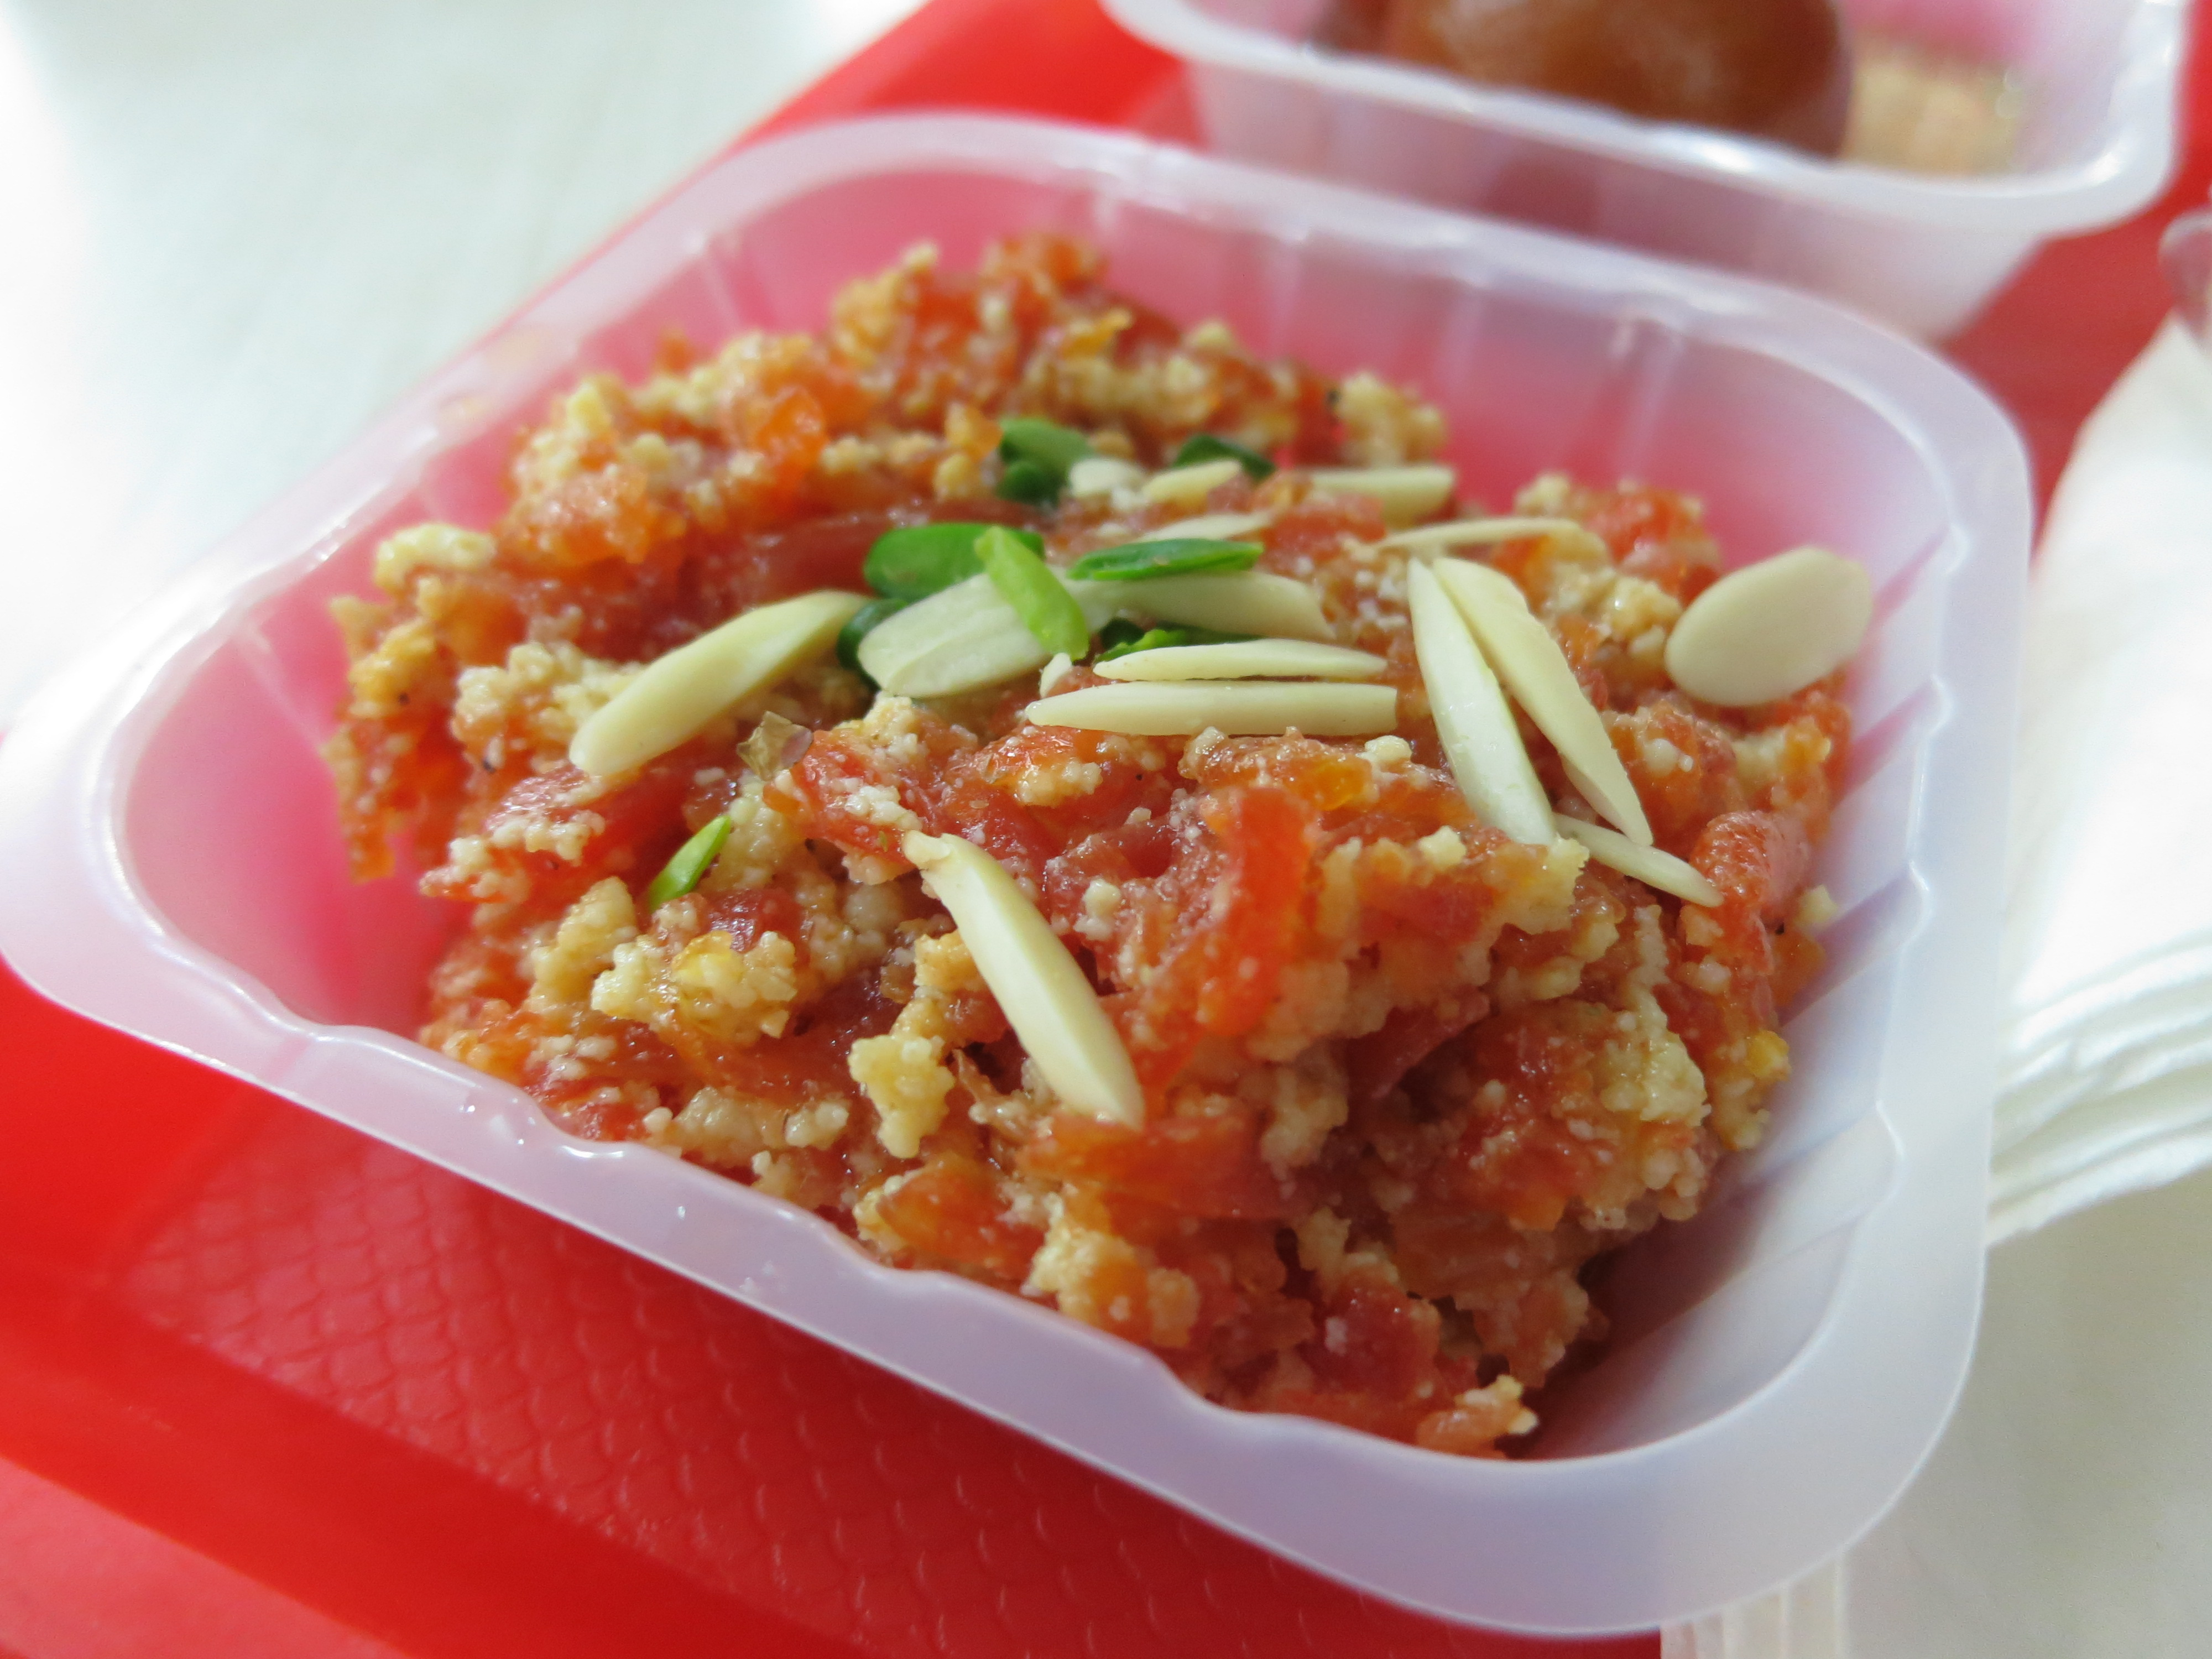 Is Carrot Common In Indian Food